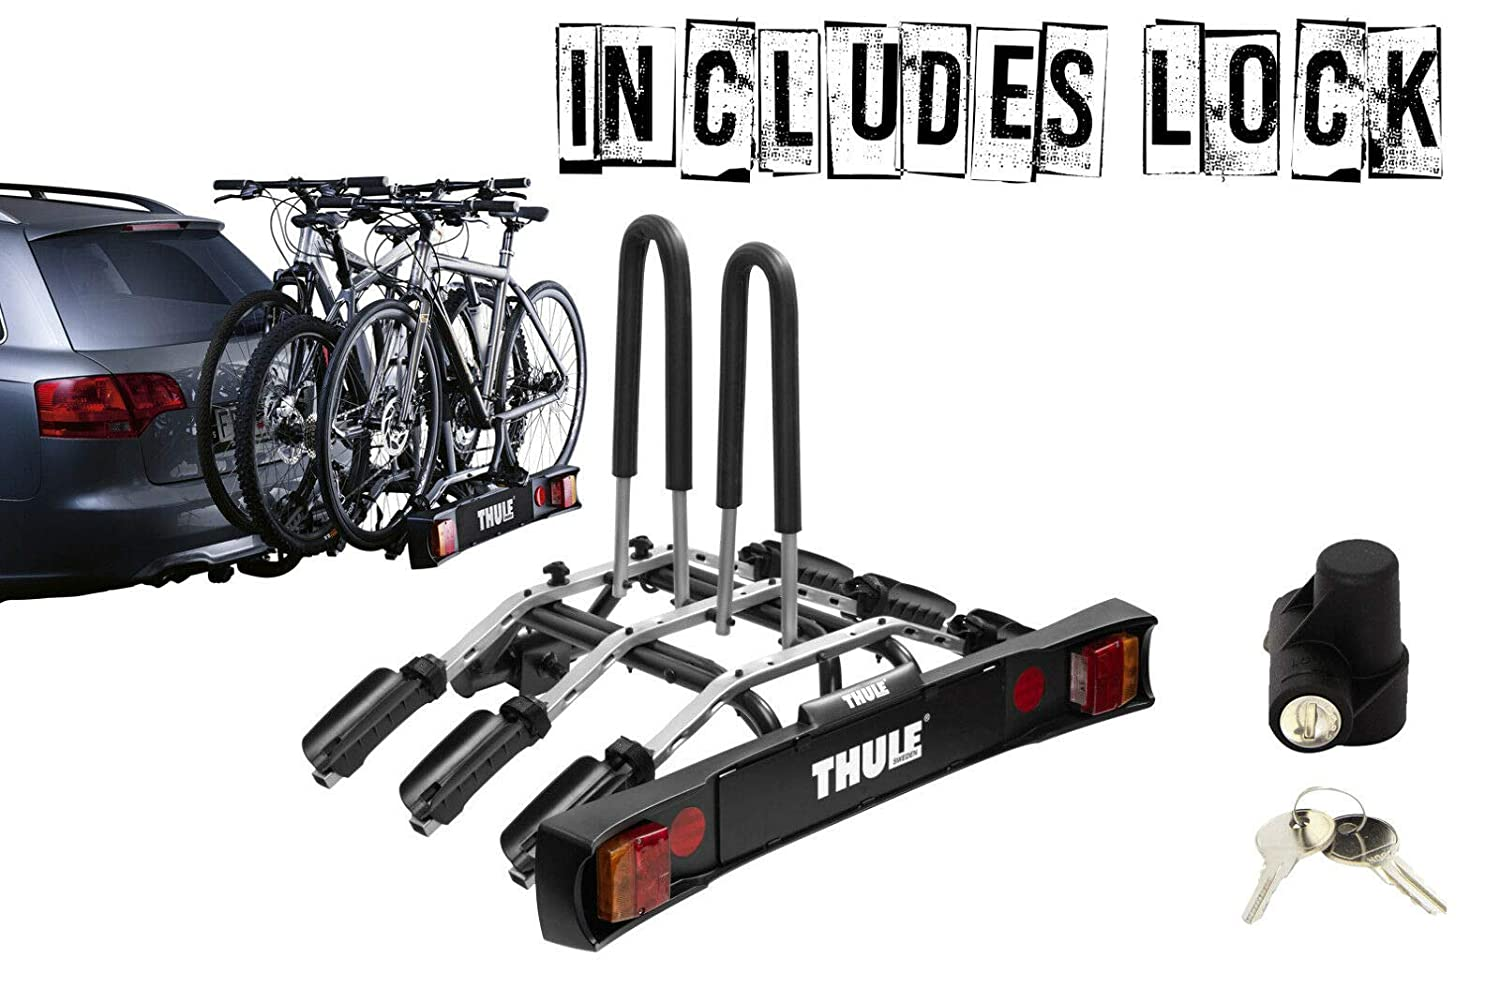 Includes Locks GL-Thule 9503 Towbar Cycle Carrier Rack Holds 3 Bikes